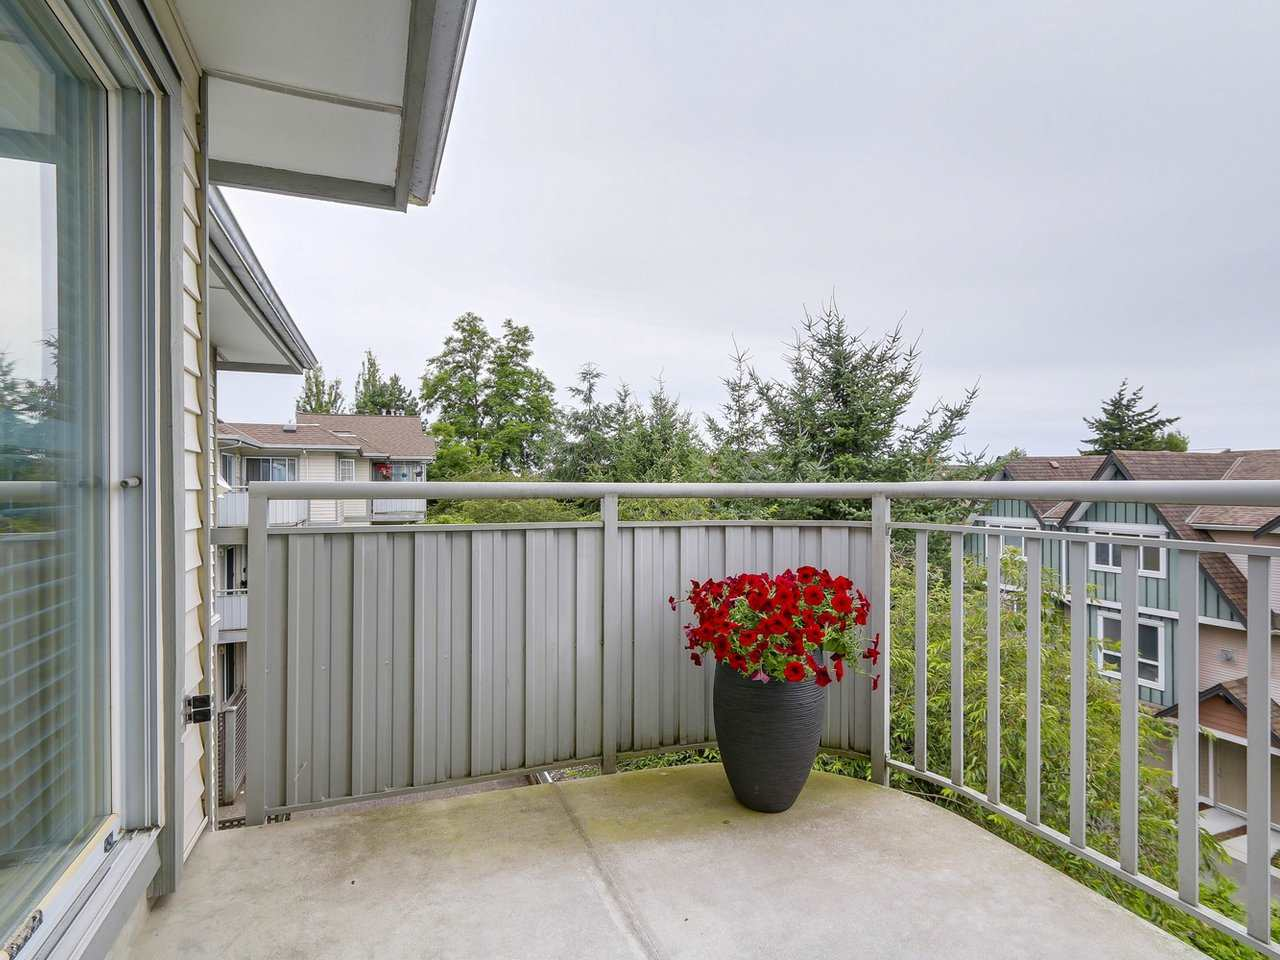 Photo 11: 304 8120 BENNETT Road in Richmond: Brighouse South Condo for sale : MLS® # R2191205